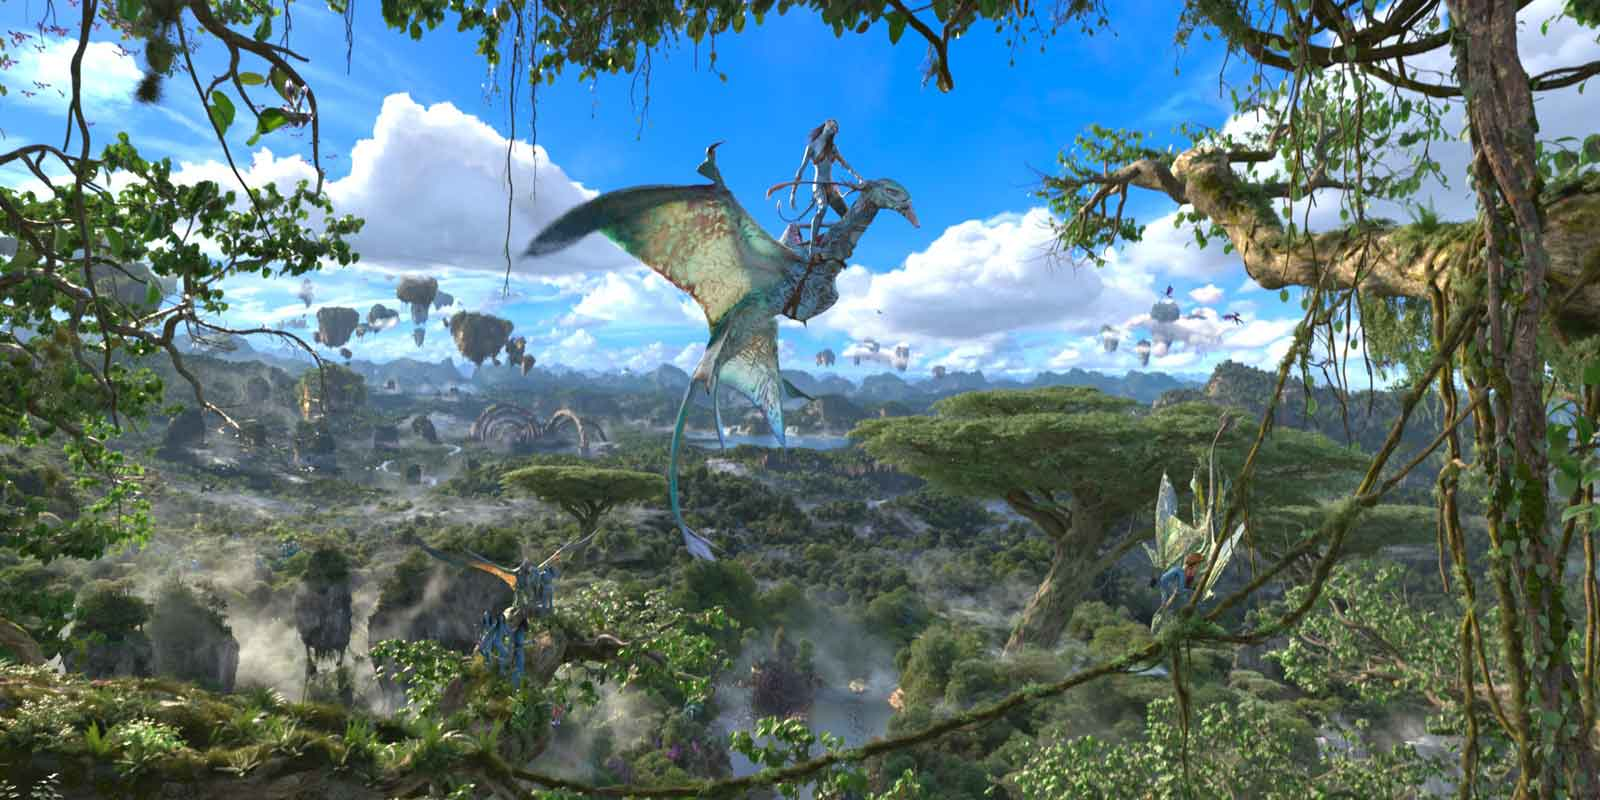 Scene from the 3-D virtual reality ride, Avatar Flight of Passage, at Animal Kingdom.